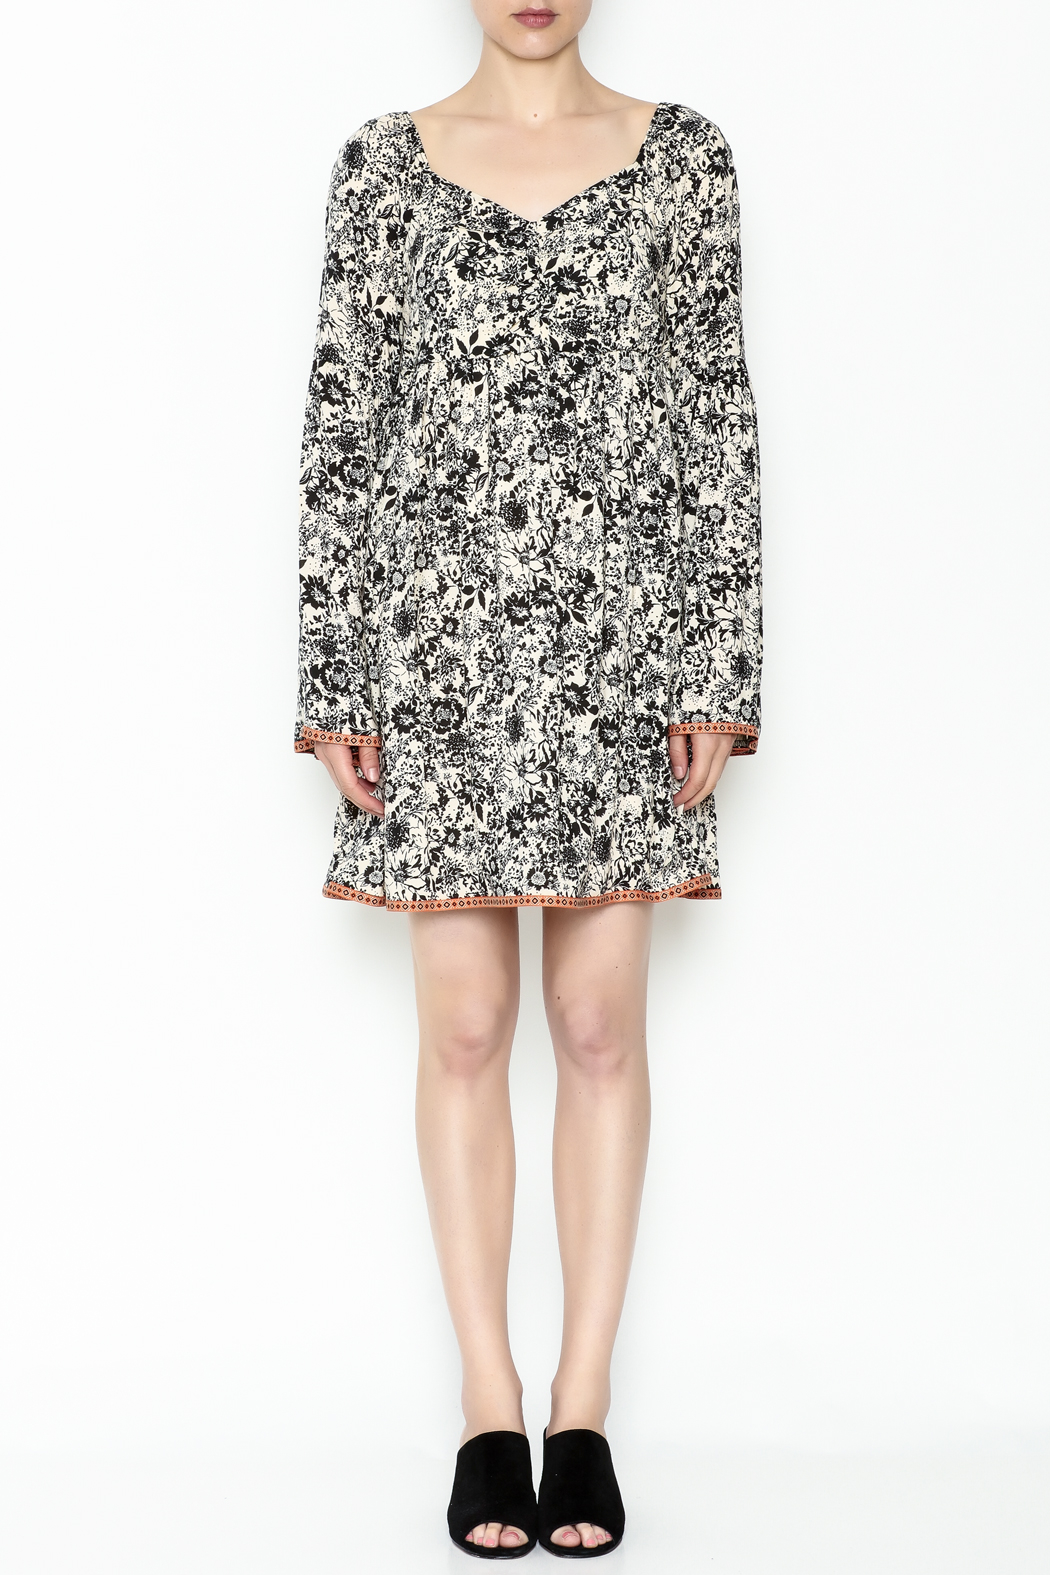 Ces Femme Floral Flare Dress - Front Full Image